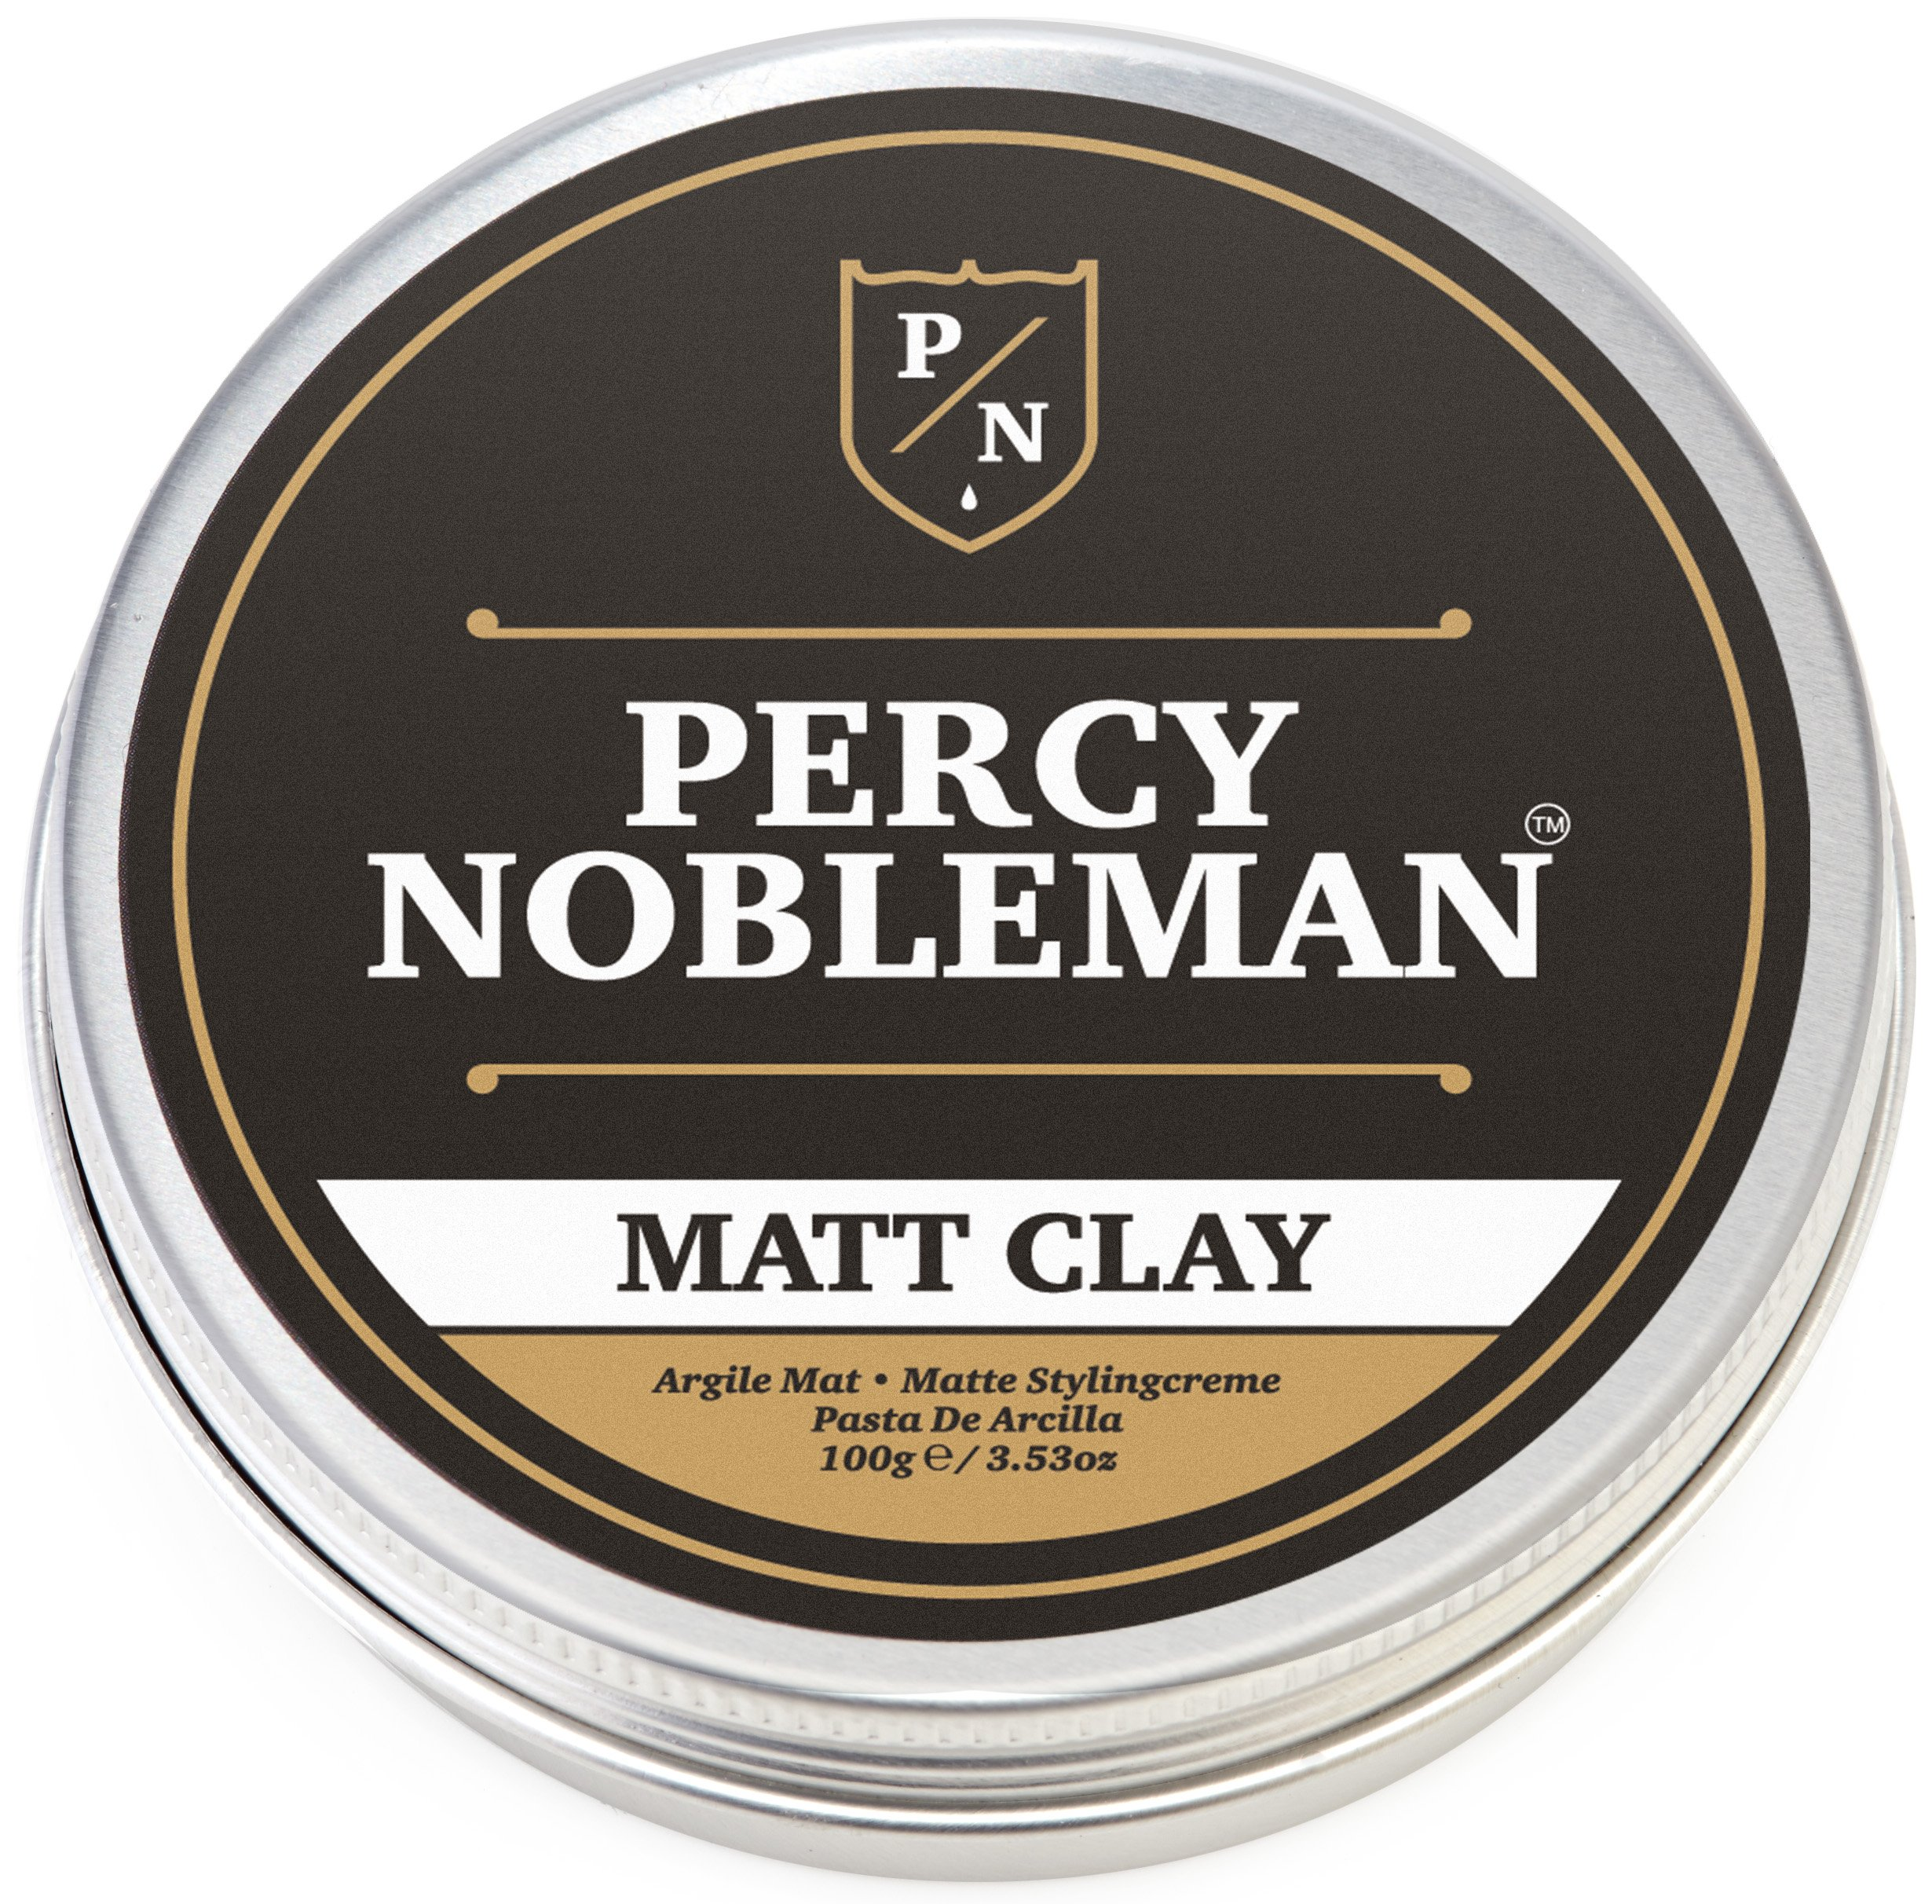 Matte Clay By Percy Nobleman, A Hair Clay For Men, 3.38oz by Percy Nobleman (Image #1)